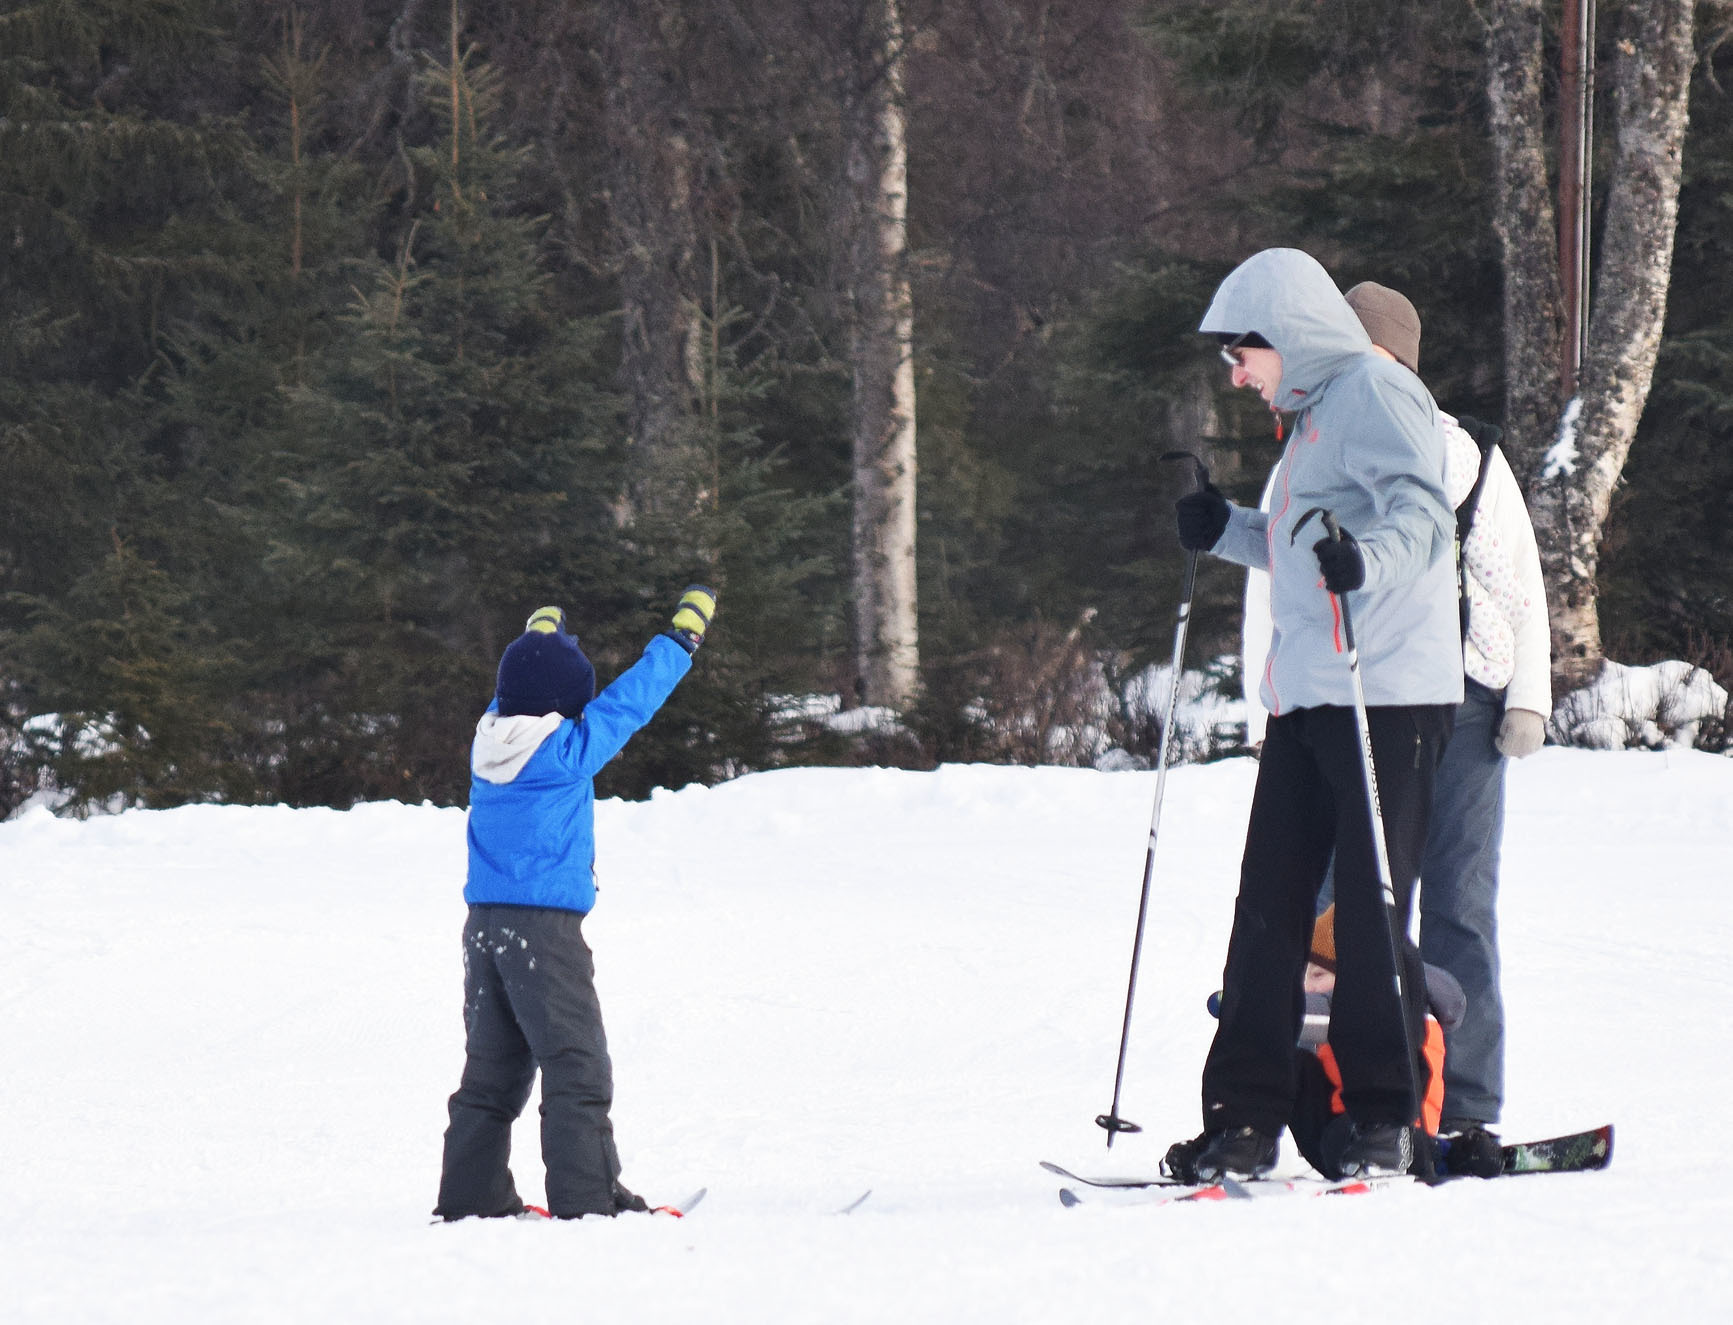 A young skier romps around with his family, Jan. 28 at the Kenai Golf Course. (Photo by Joey Klecka/Peninsula Clarion)